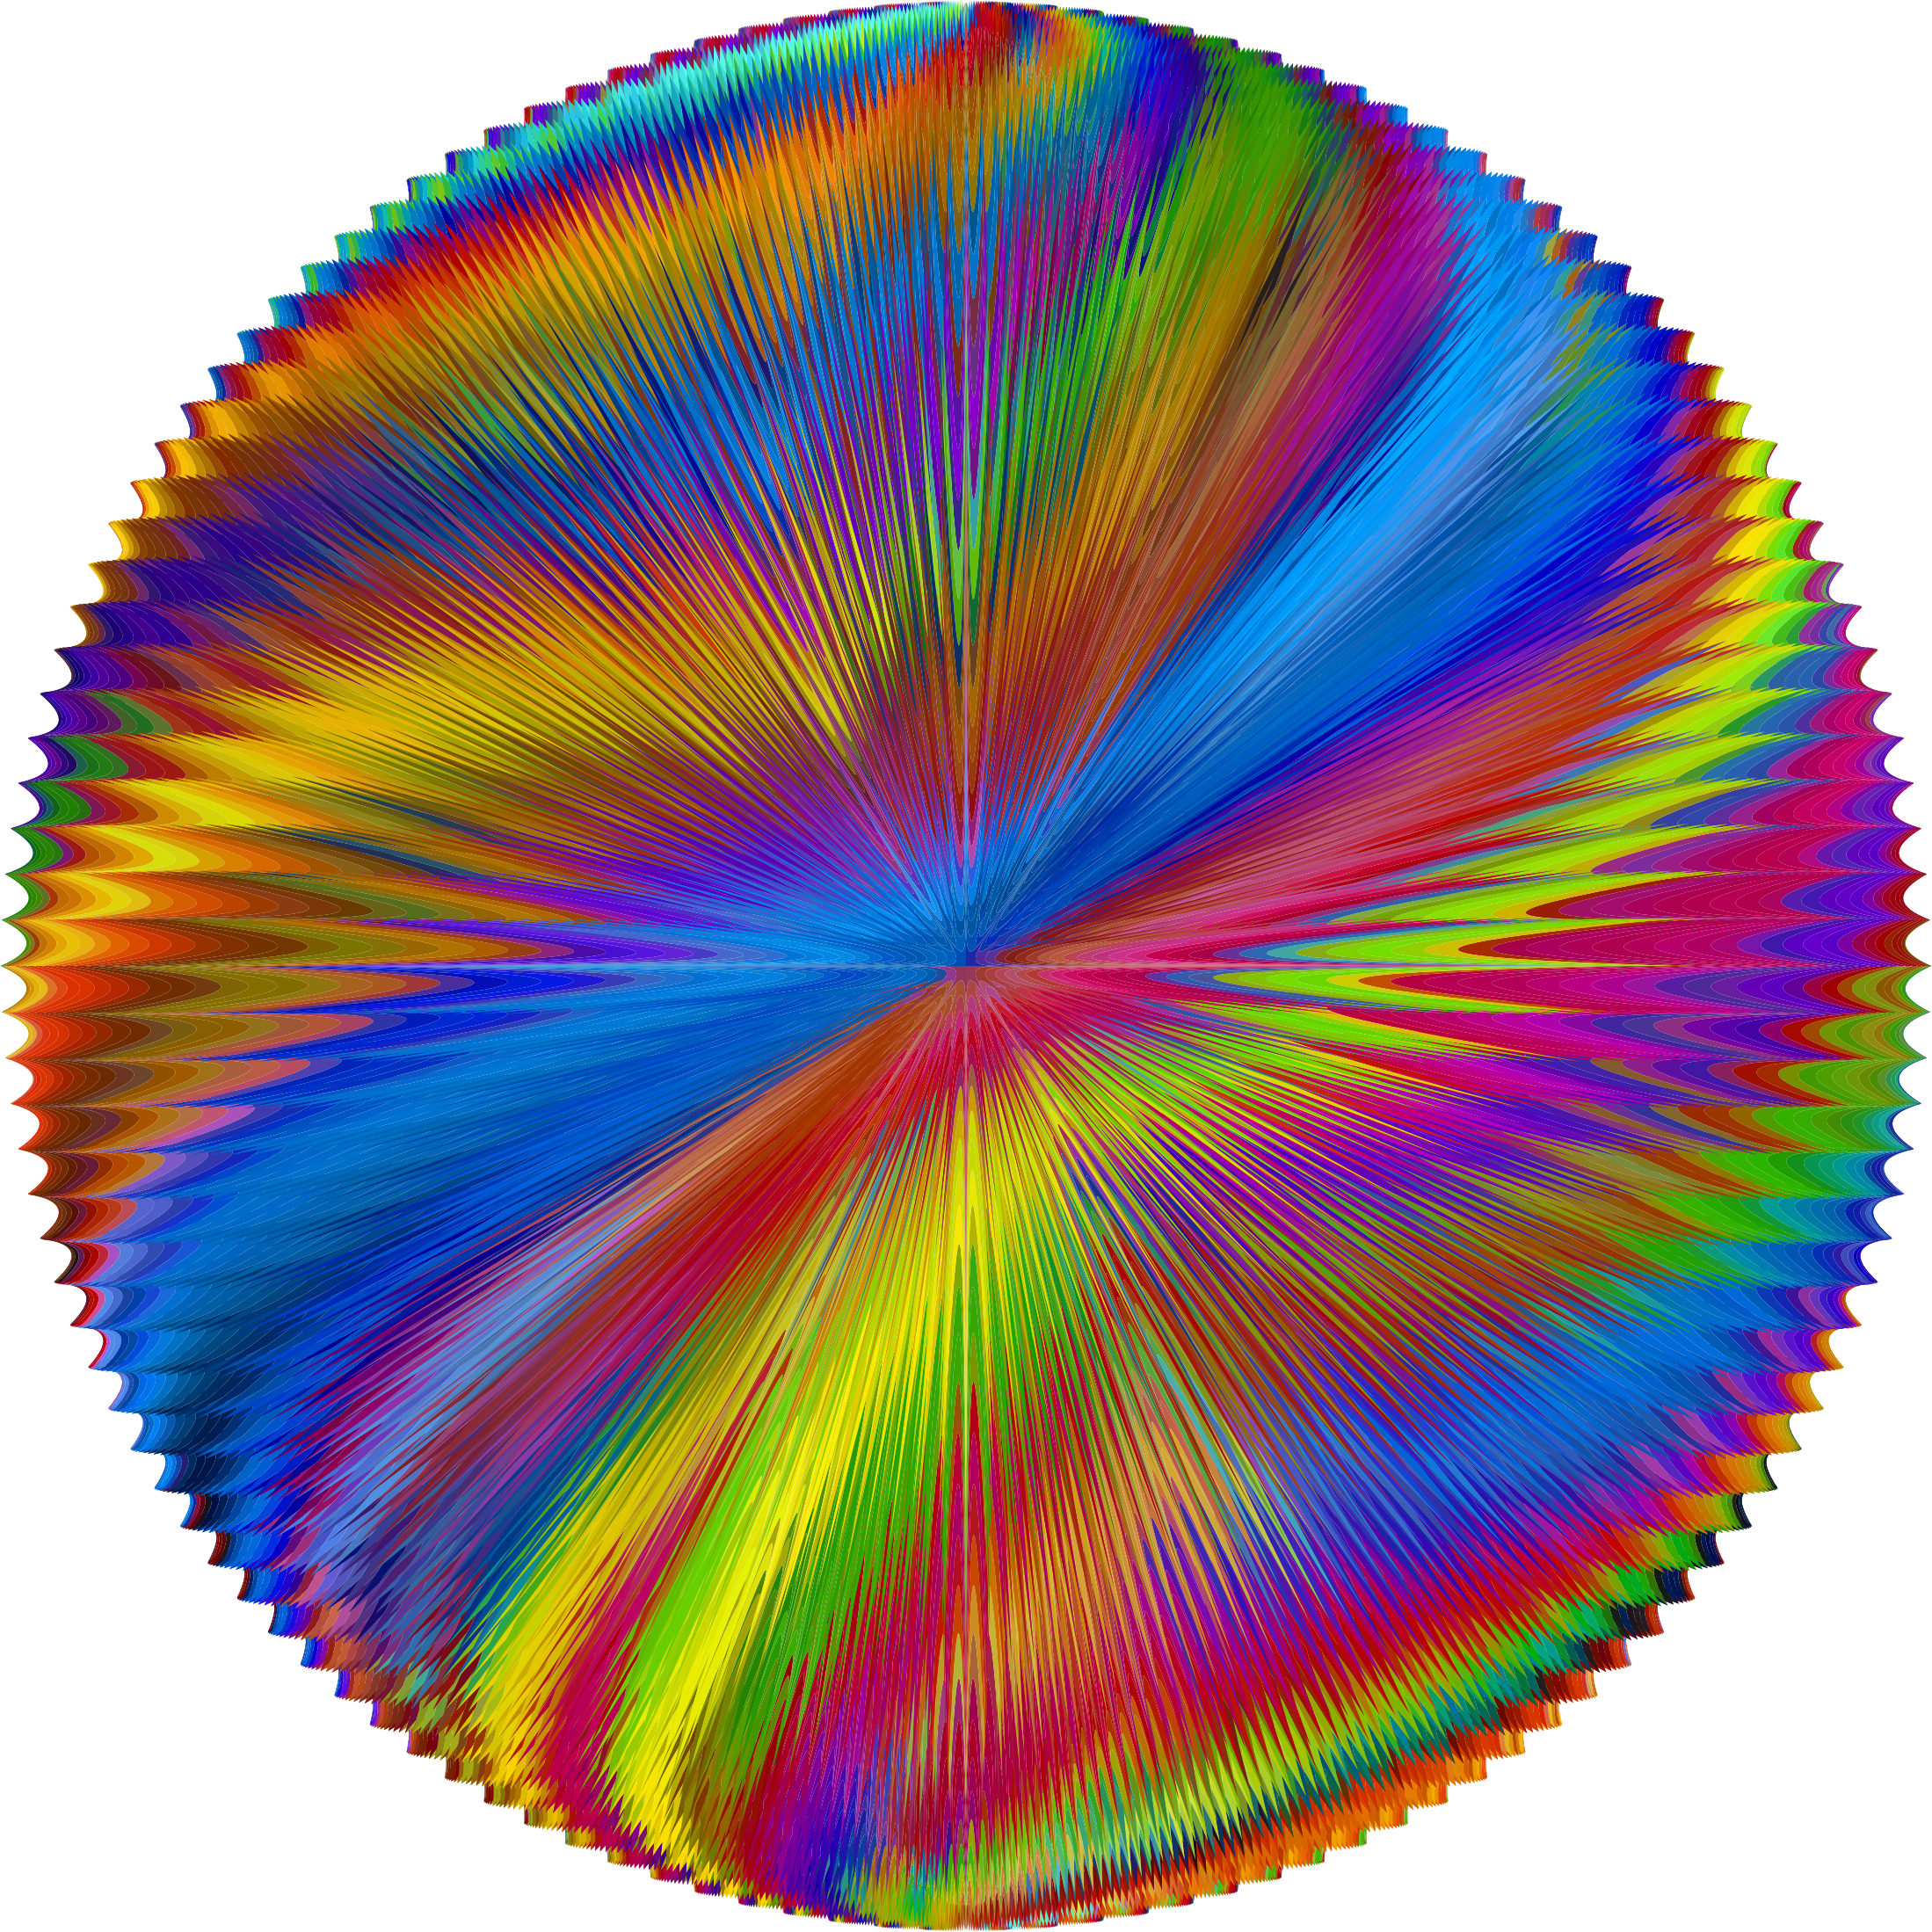 Psychedelic clipart #7, Download drawings